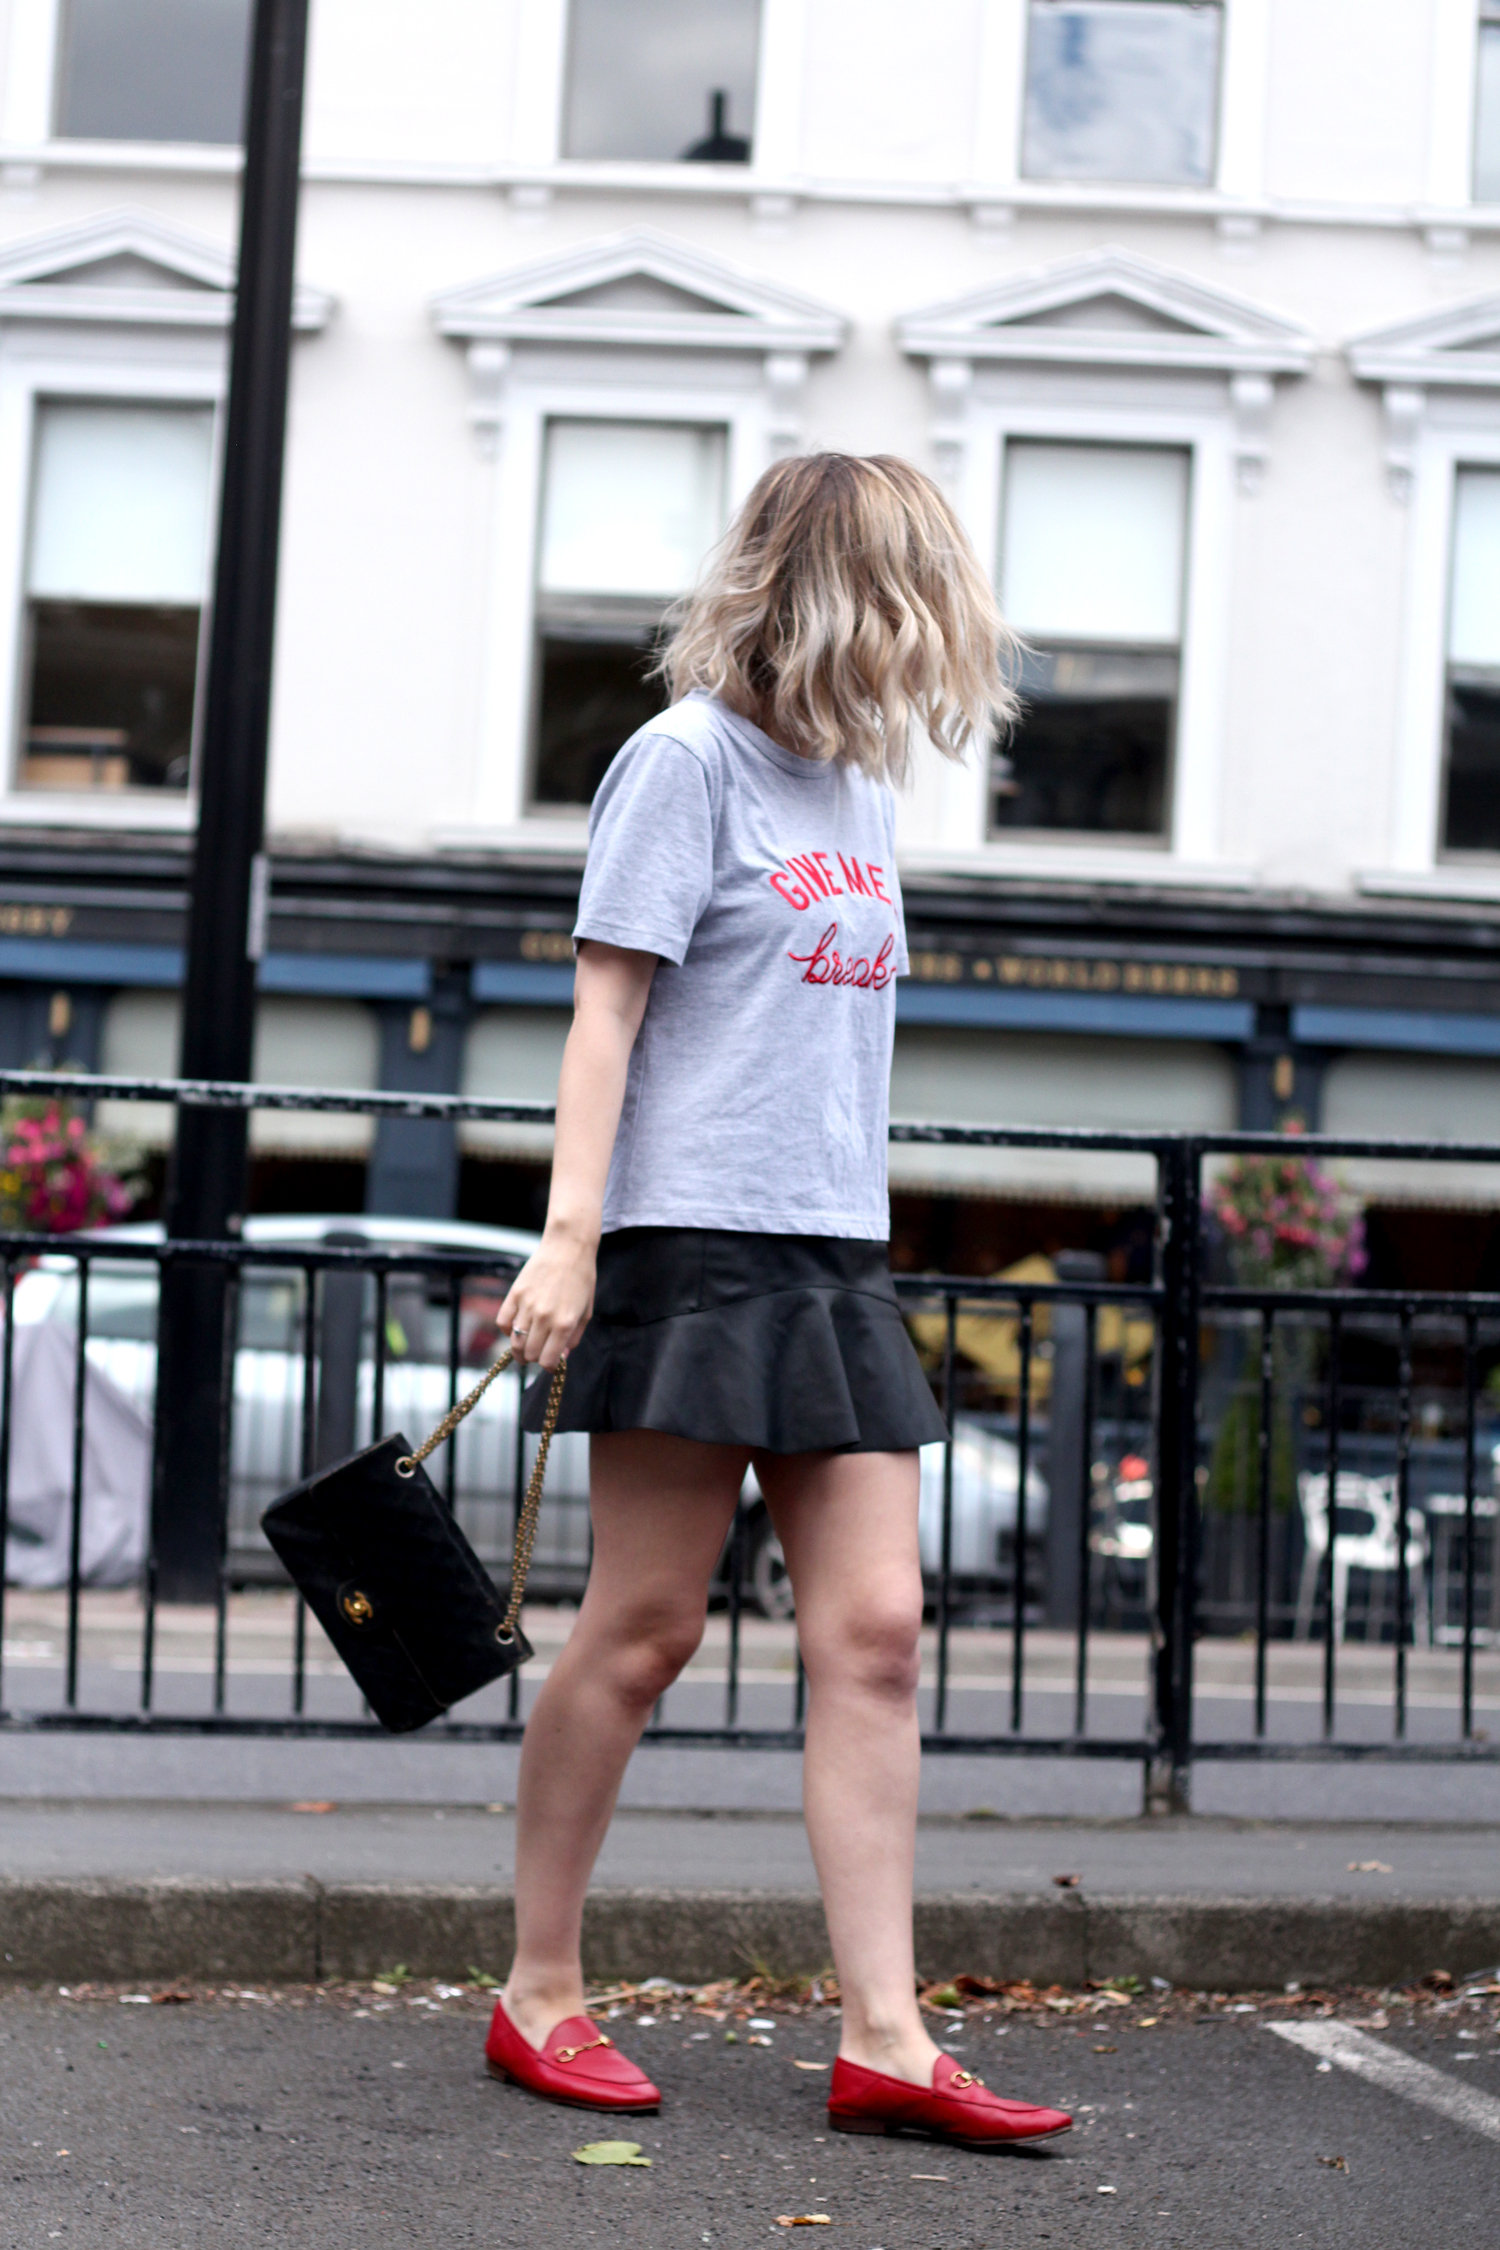 pretty-little-thing-give-me-a-break-slogan-tshirt-vintage-chanel